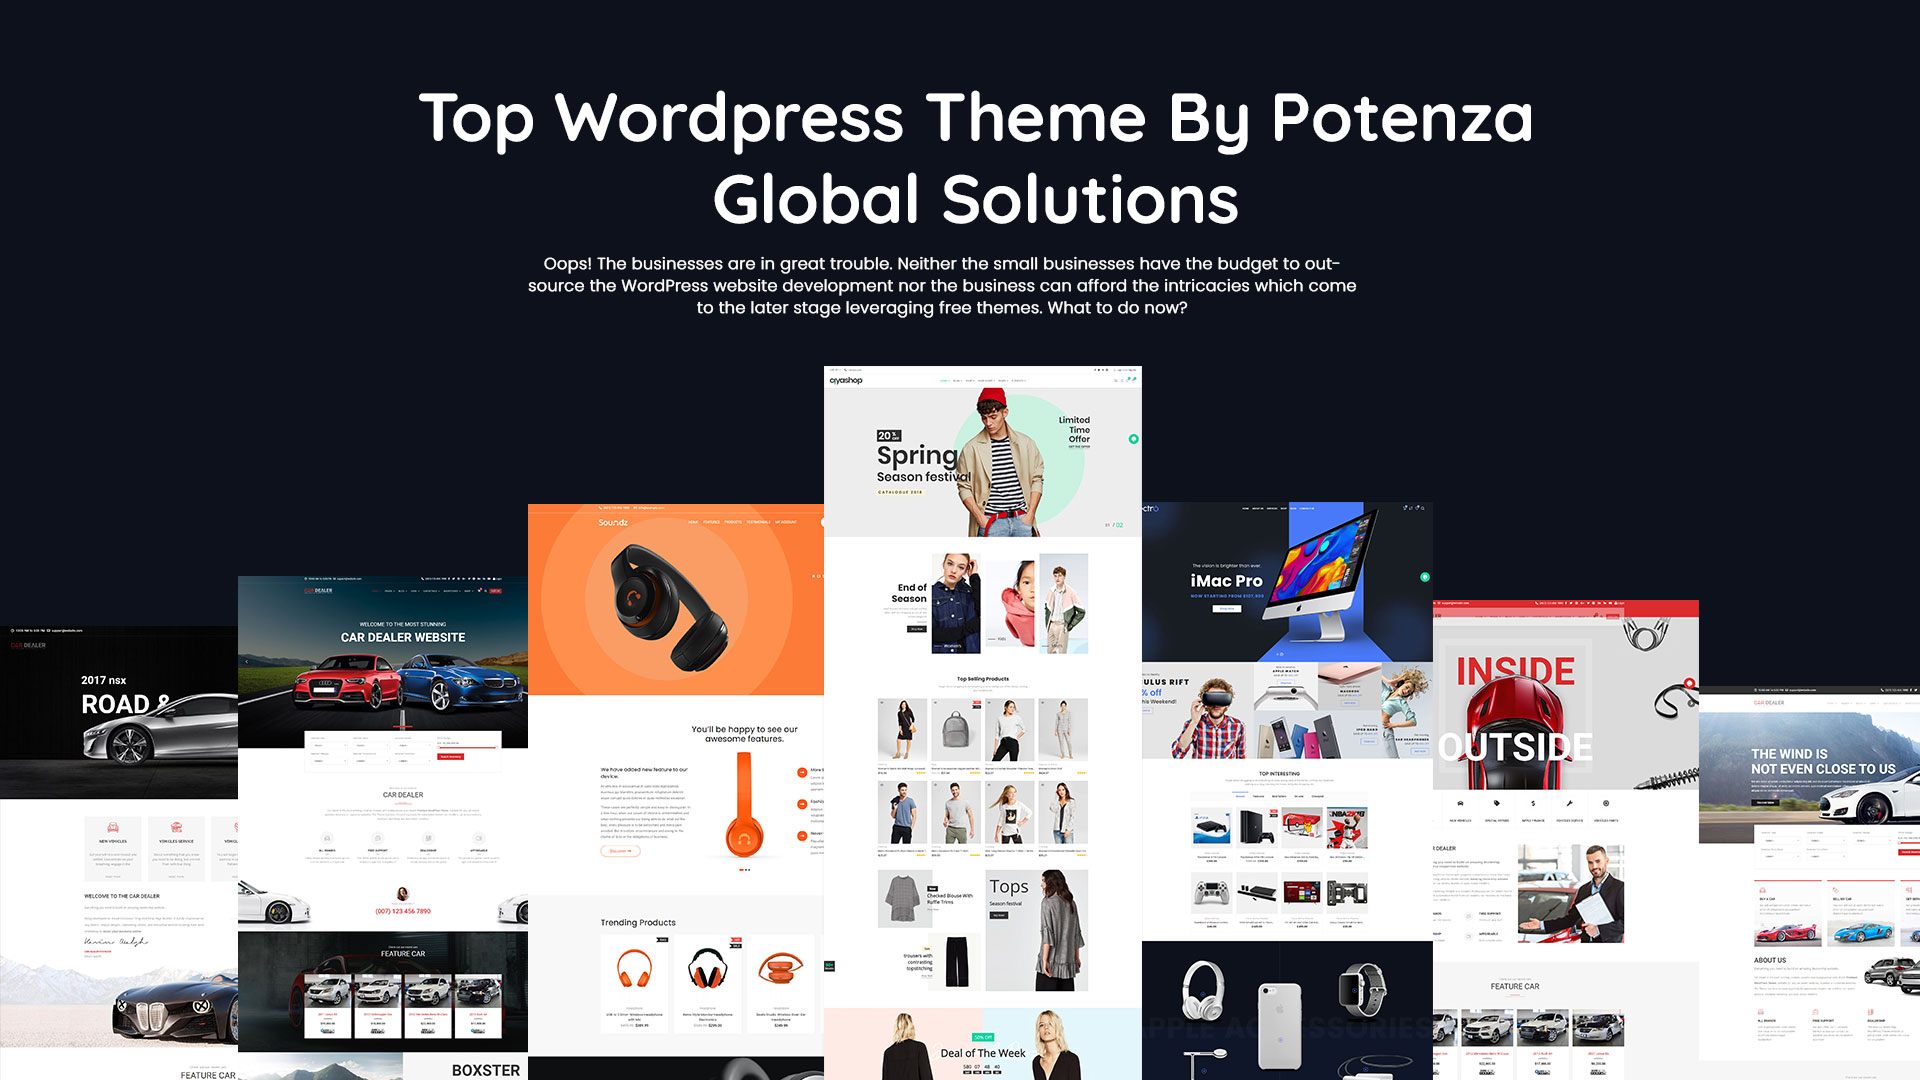 Top Wordpress Theme By Potenza Global Solutions